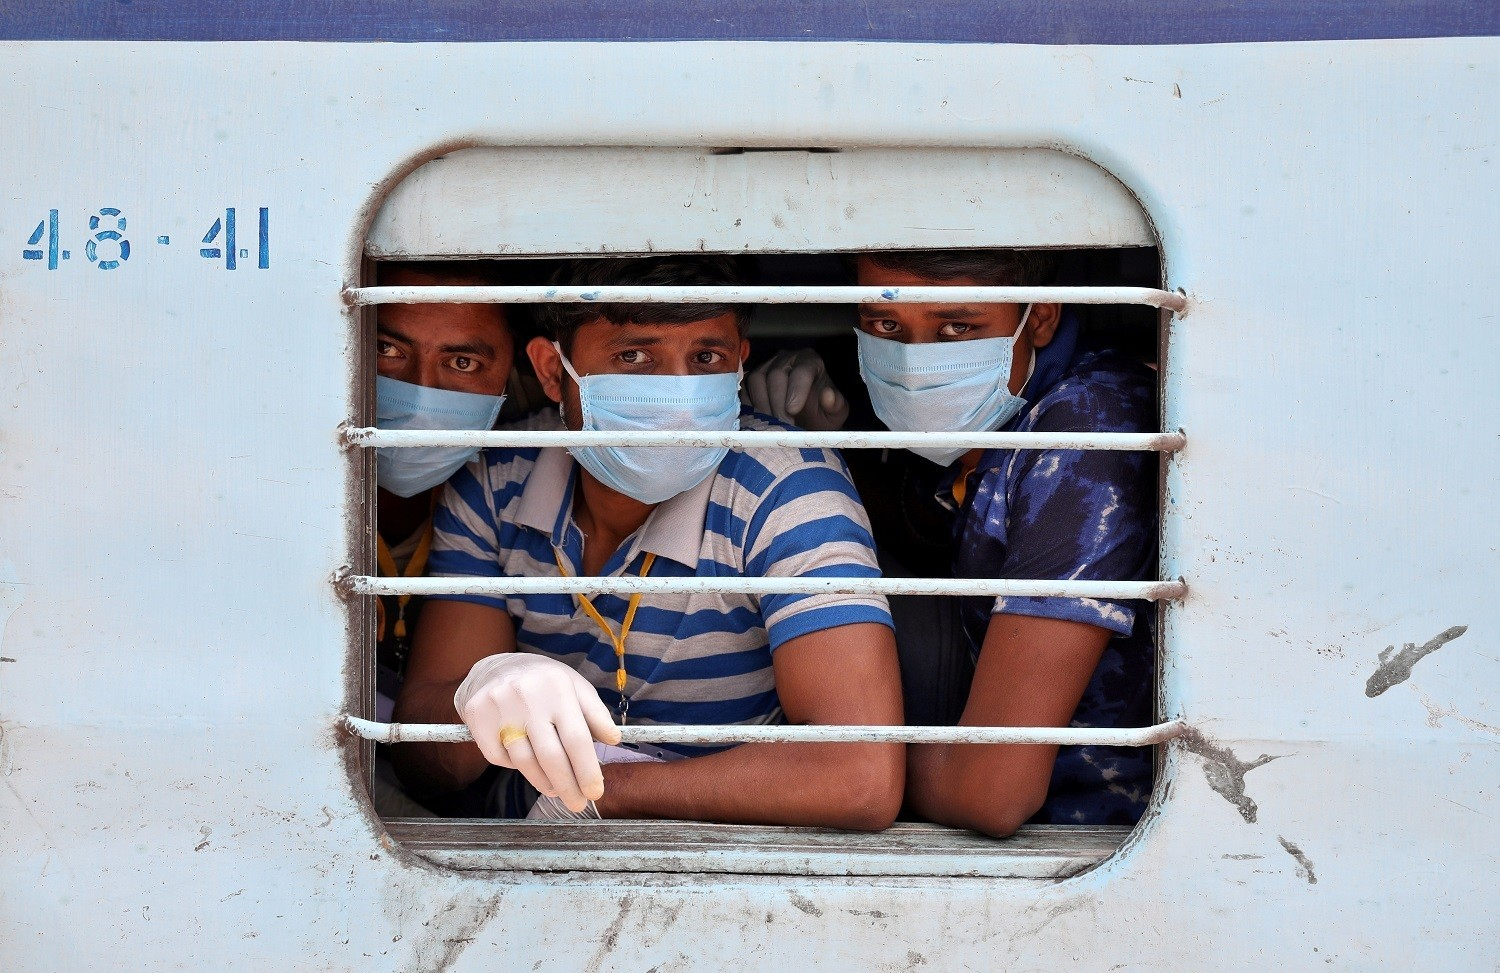 Migrant workers, who were stranded in the western state of Rajasthan due to a lockdown imposed by the government to prevent the spread of coronavirus disease (COVID-19), wear protective masks as they look out from a window of a train upon their arrival in their home state of eastern West Bengal, at a railway station on the outskirts of Kolkata, India, May 5, 2020. REUTERS/Rupak De Chowdhuri     TPX IMAGES OF THE DAY - RC27IG9ICJTR